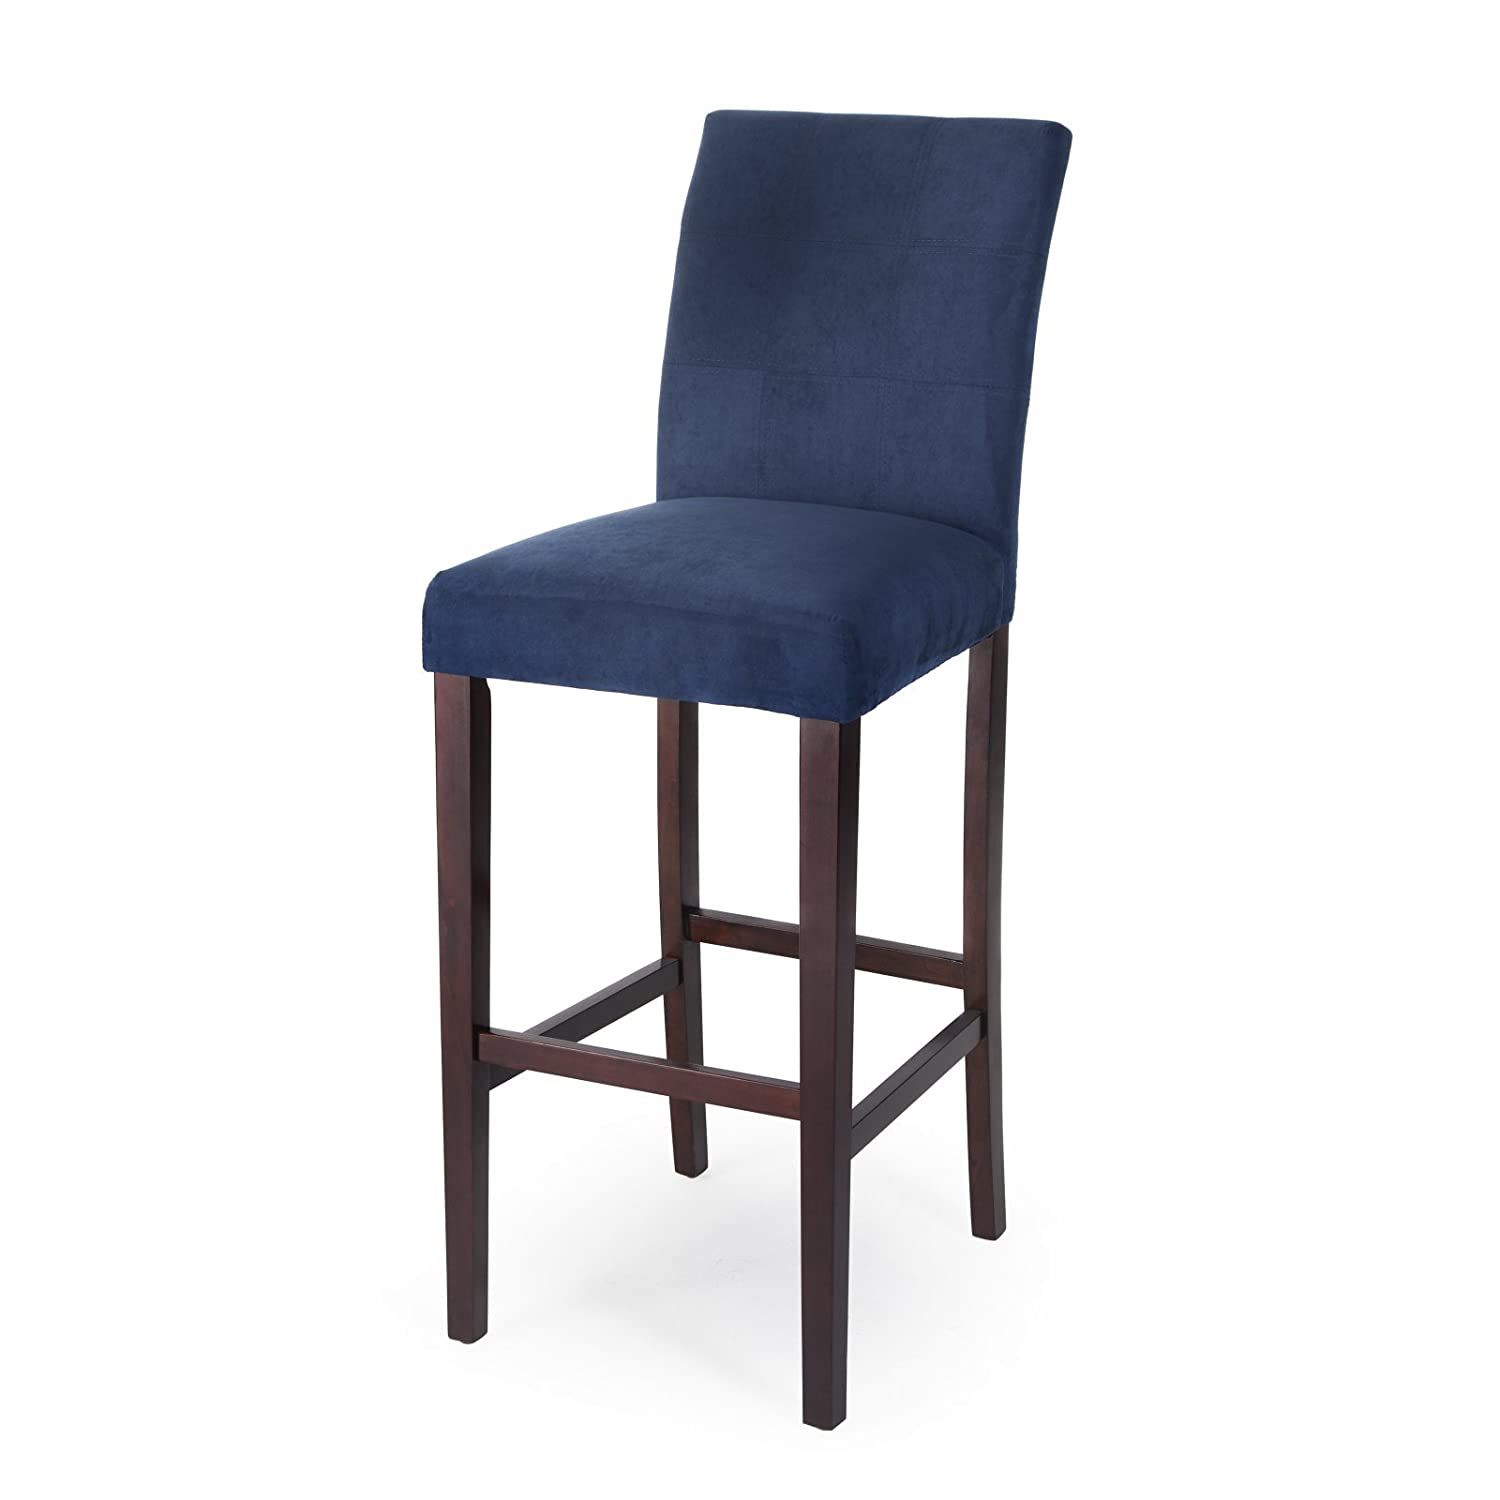 Amazon Palazzo 34 Inch Extra Tall Bar Stool Set of 2